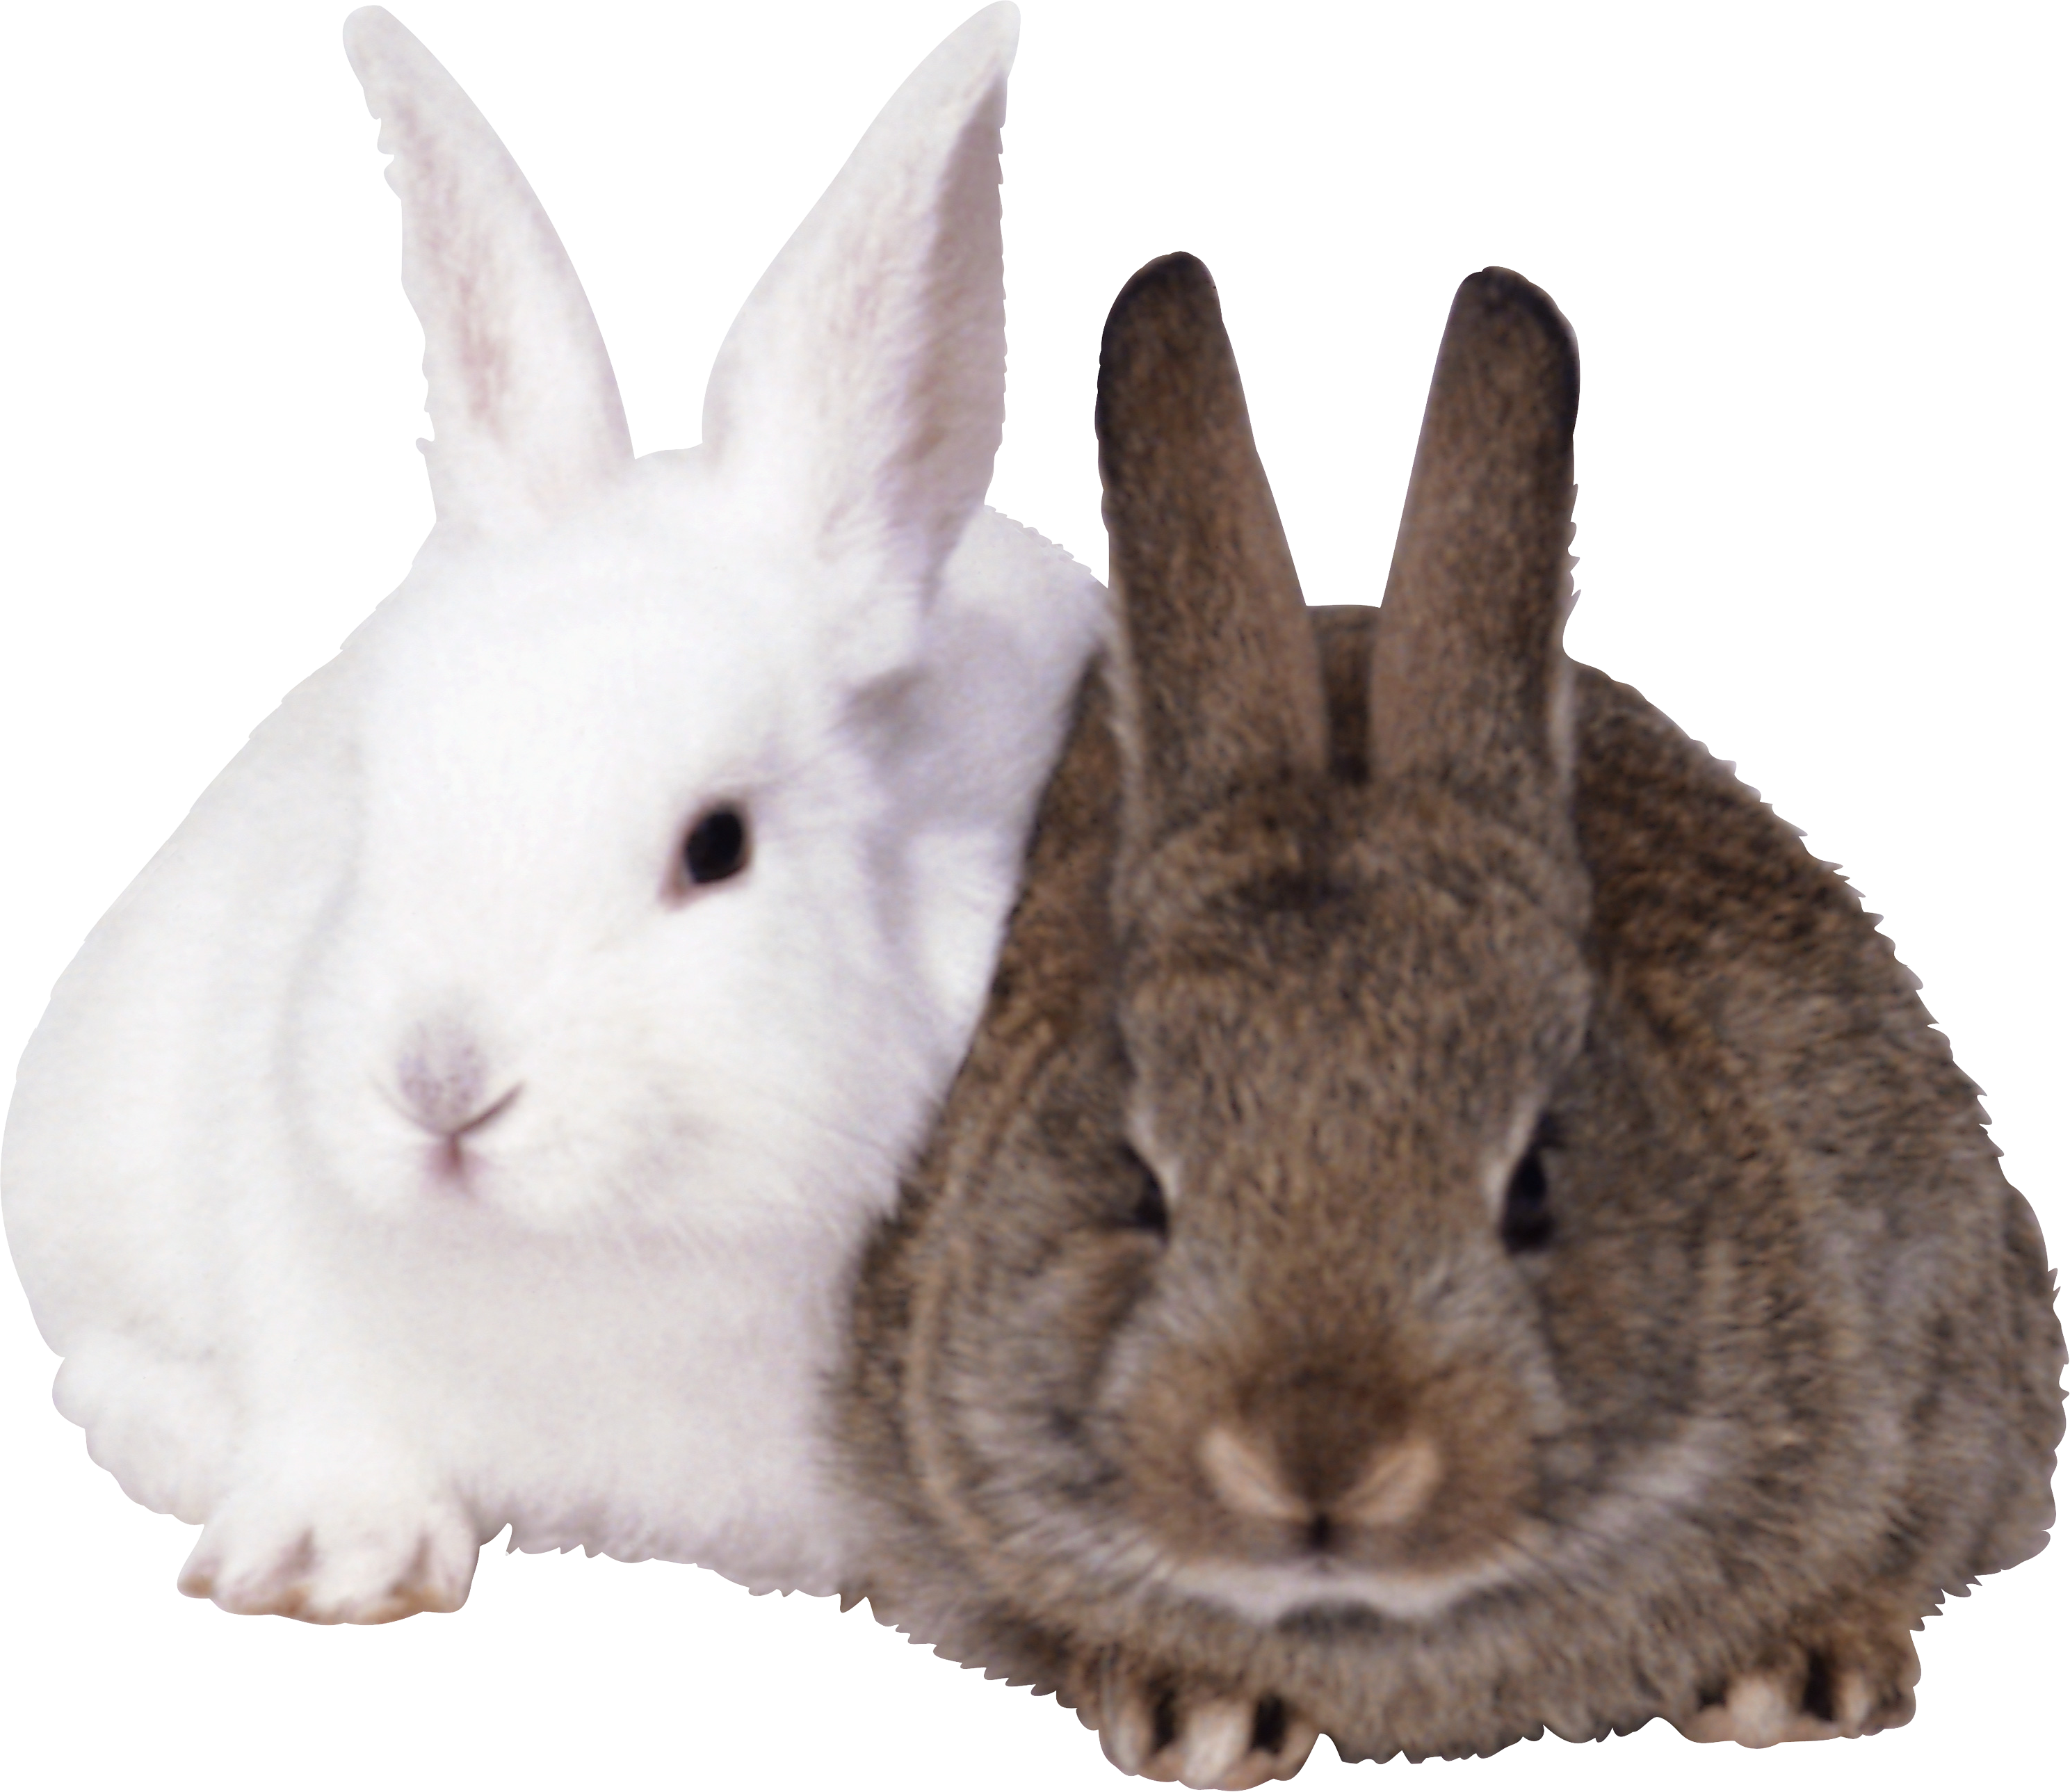 Rabbit Images